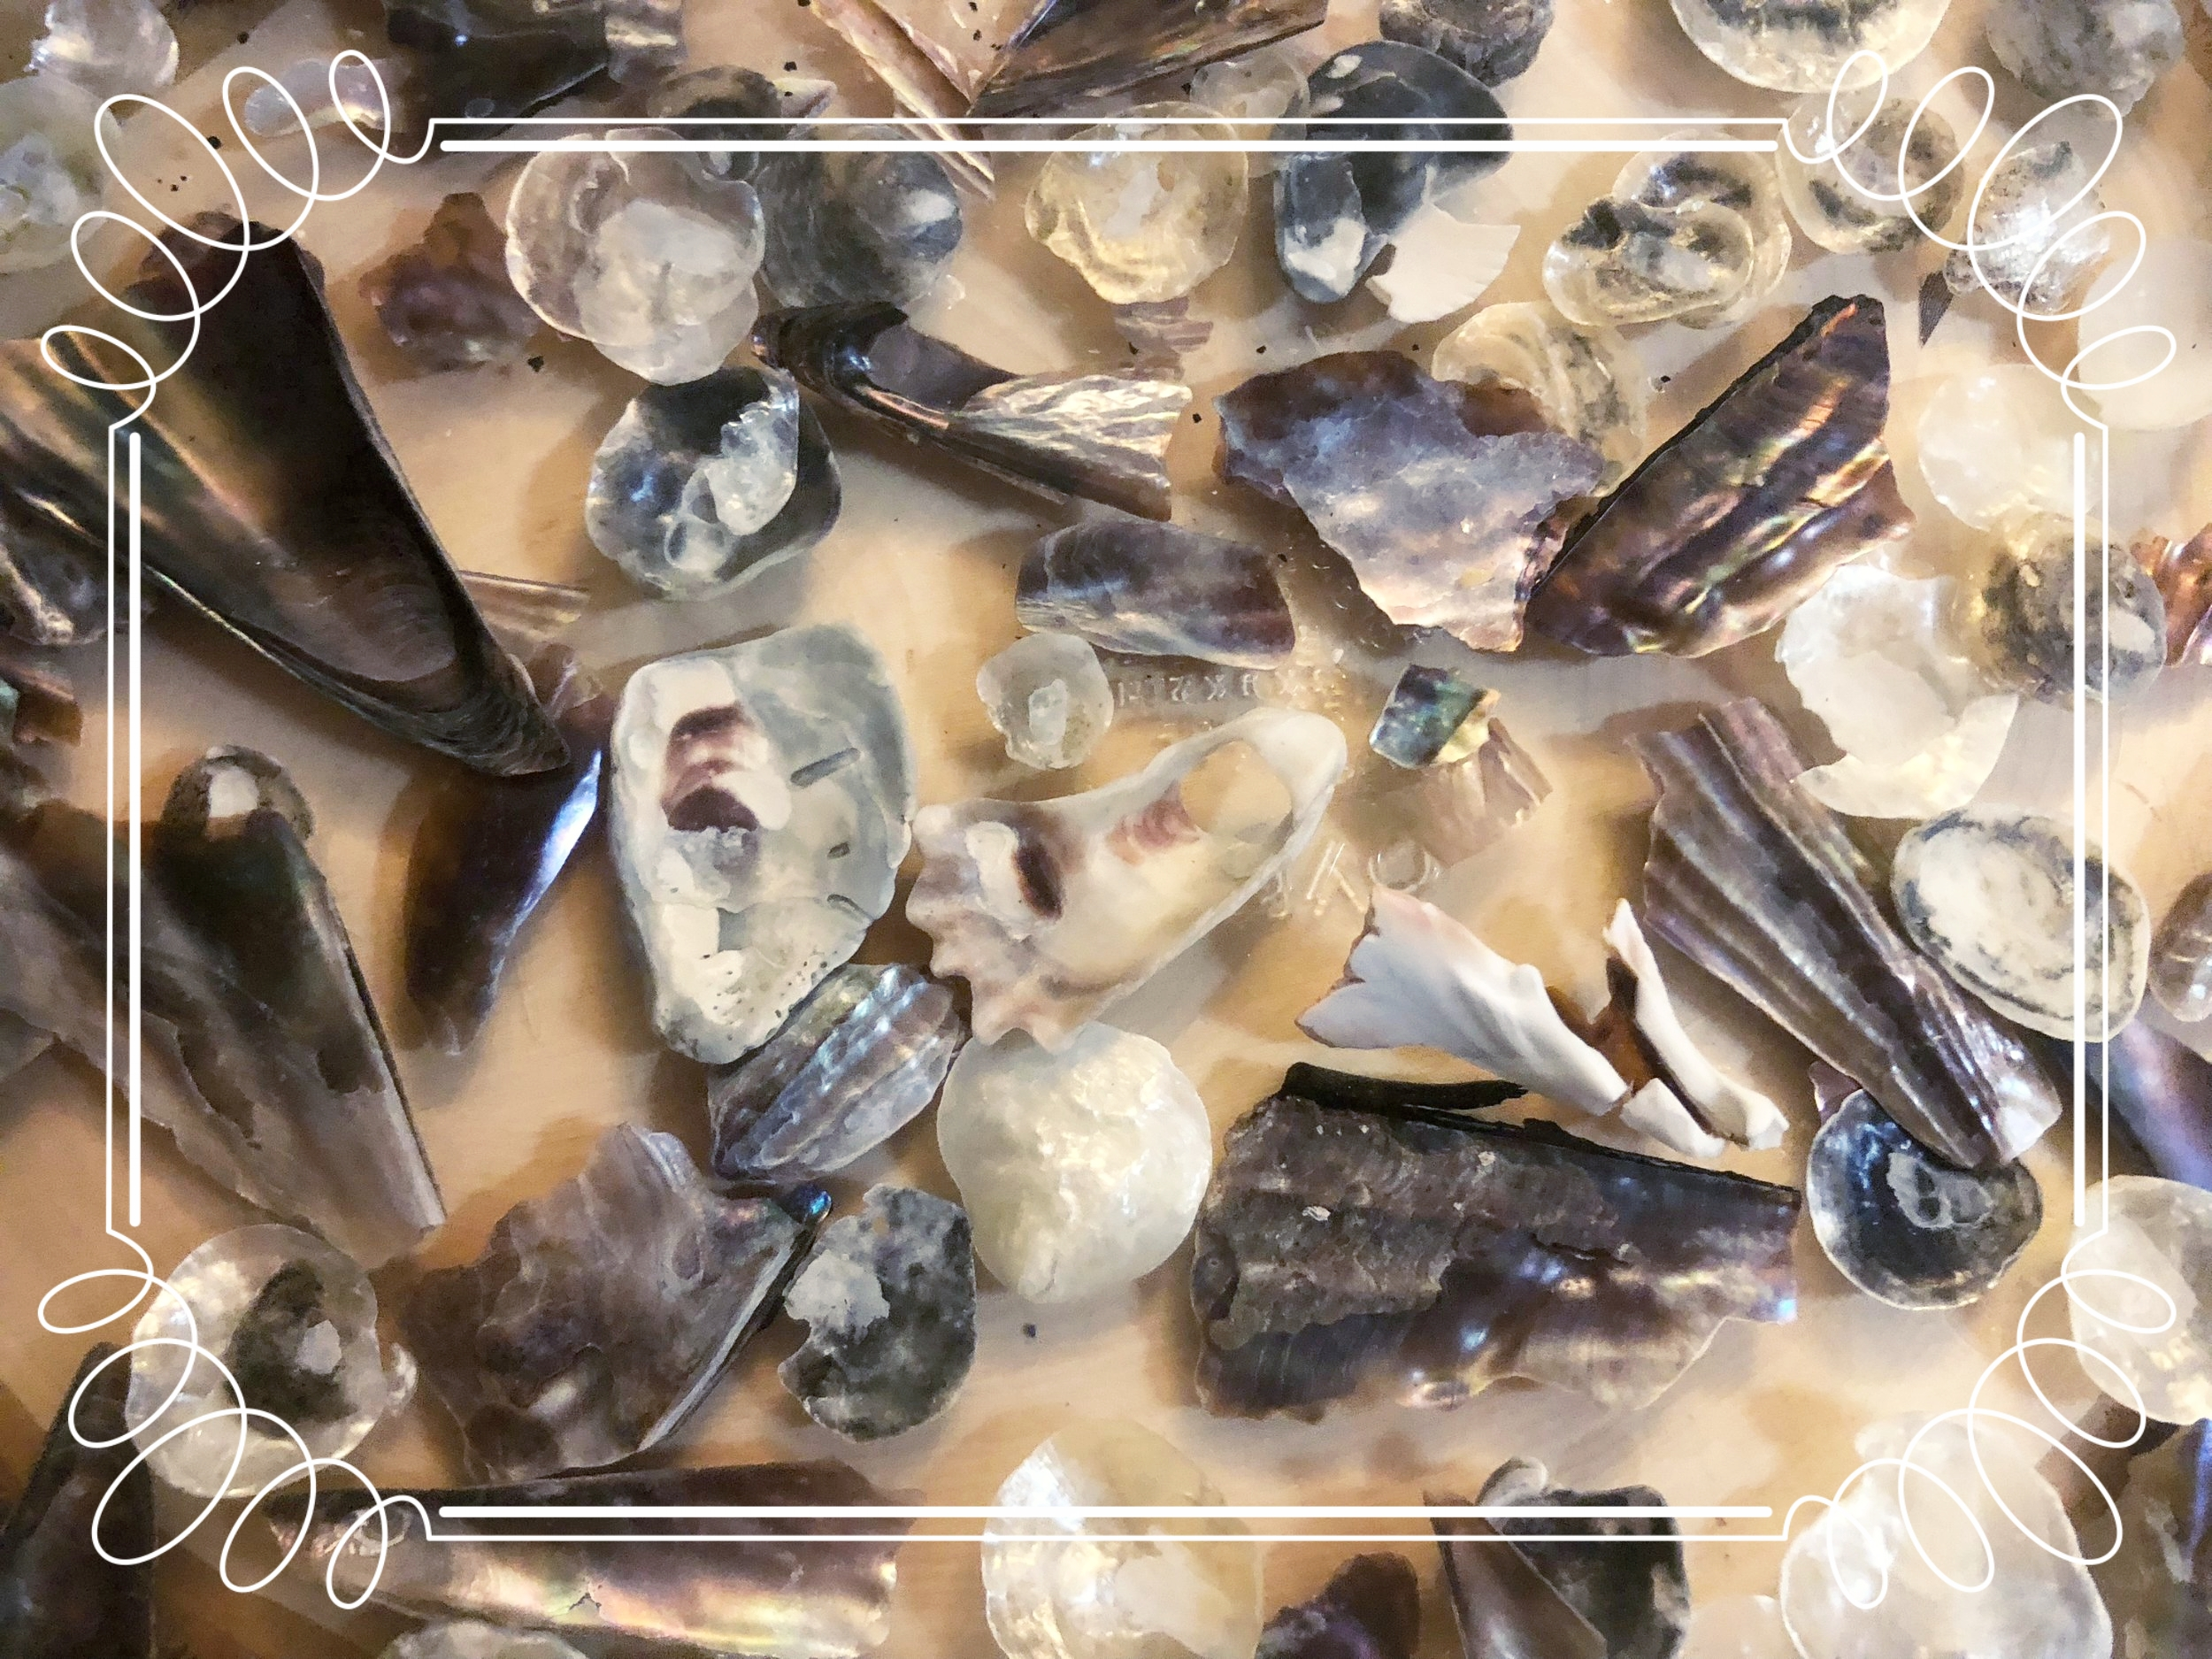 assemblages - #process #crystallization #shells